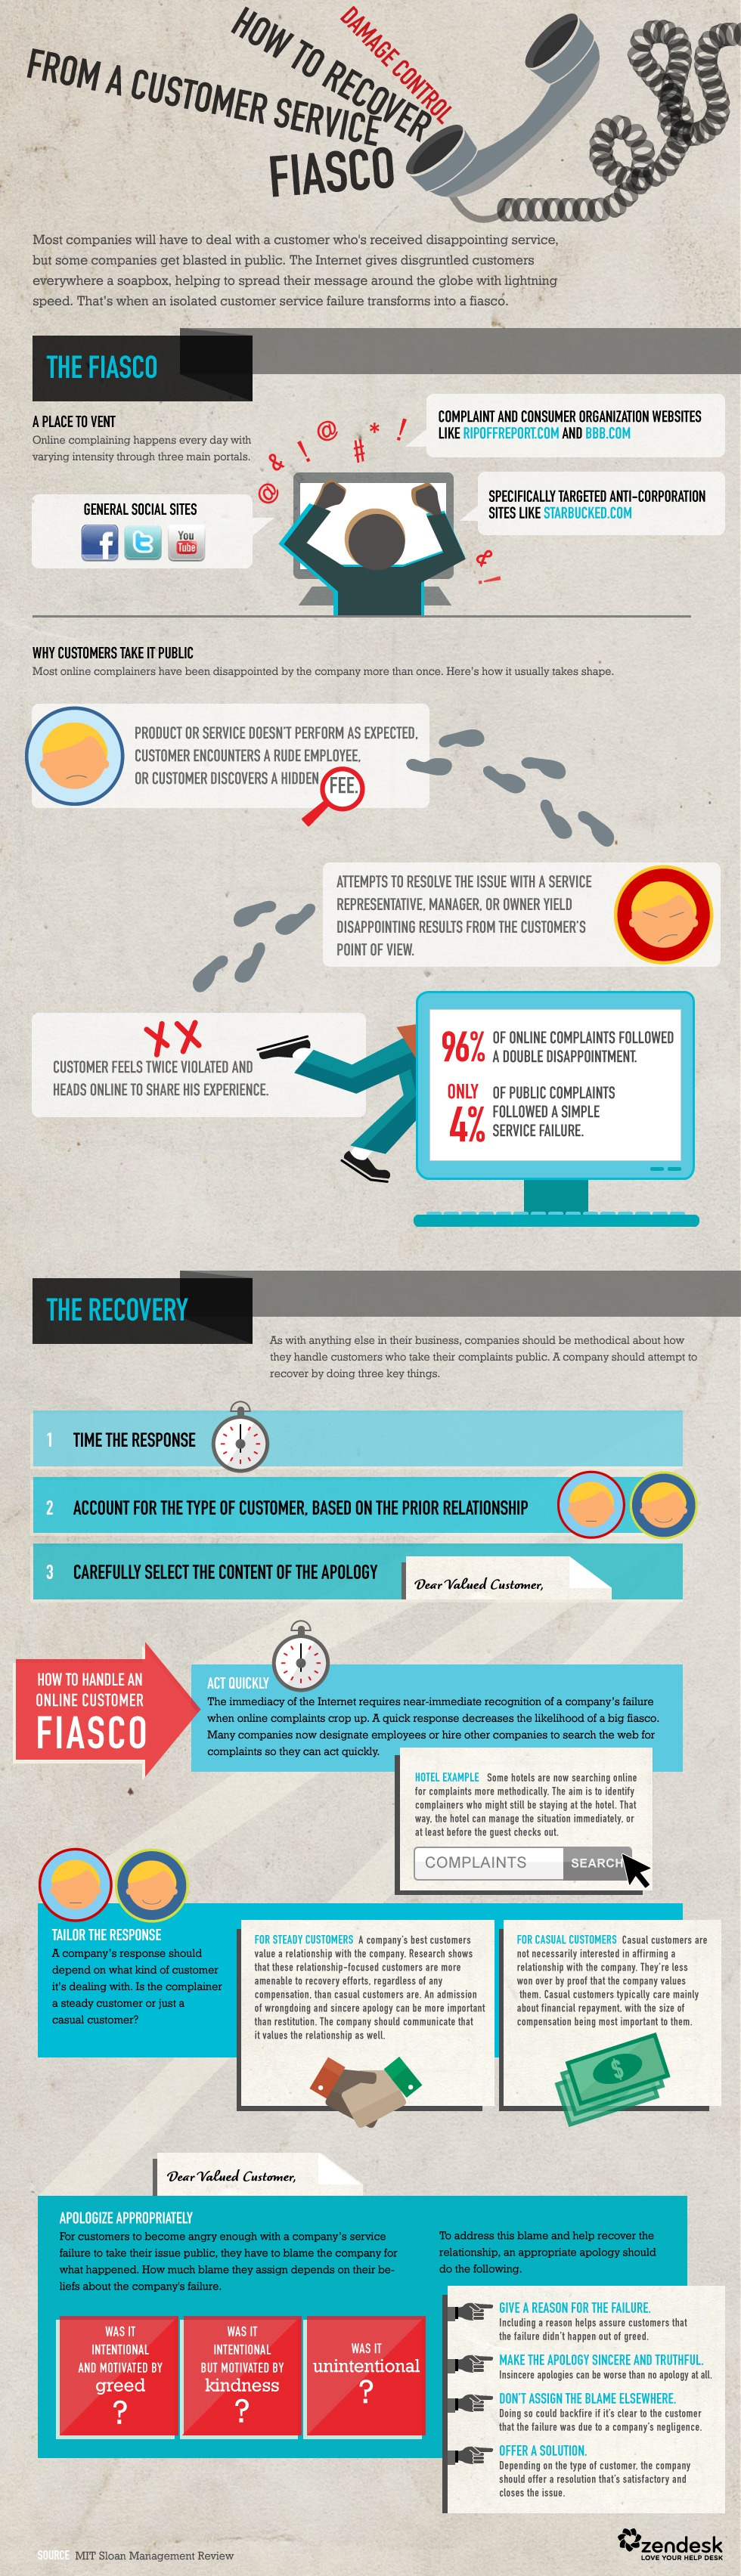 Damage Control During a Customer Service Crisis [Infographic]